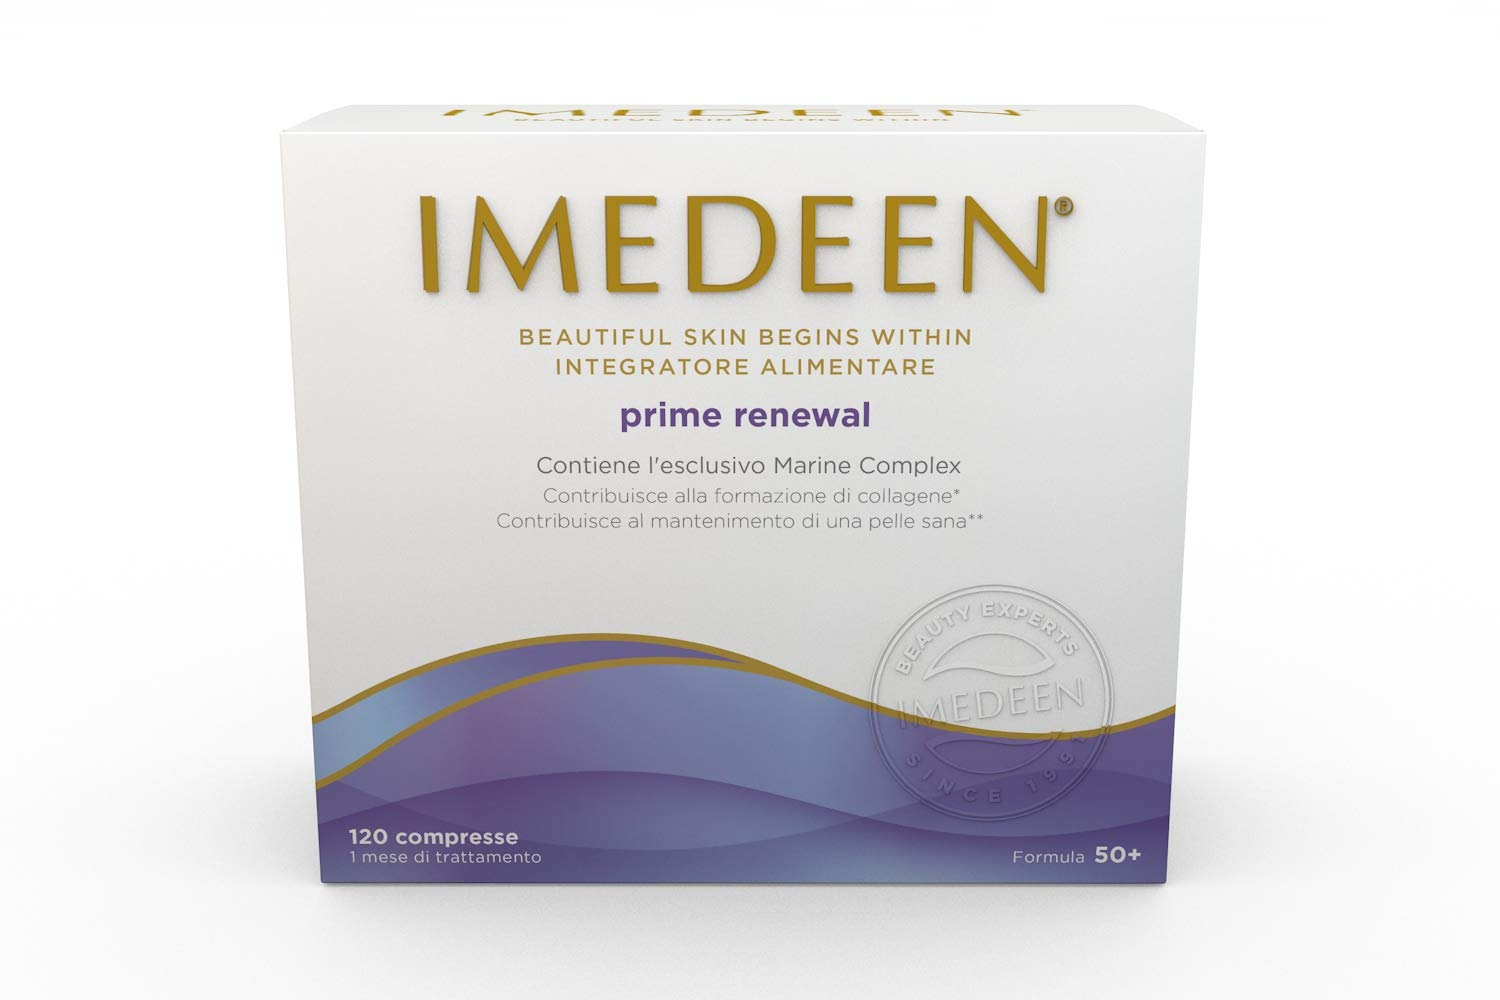 Imedeen Prime Renewal (120 Count) Skin Collagen Formula for 50 Plus Skincare Beauty Supplement